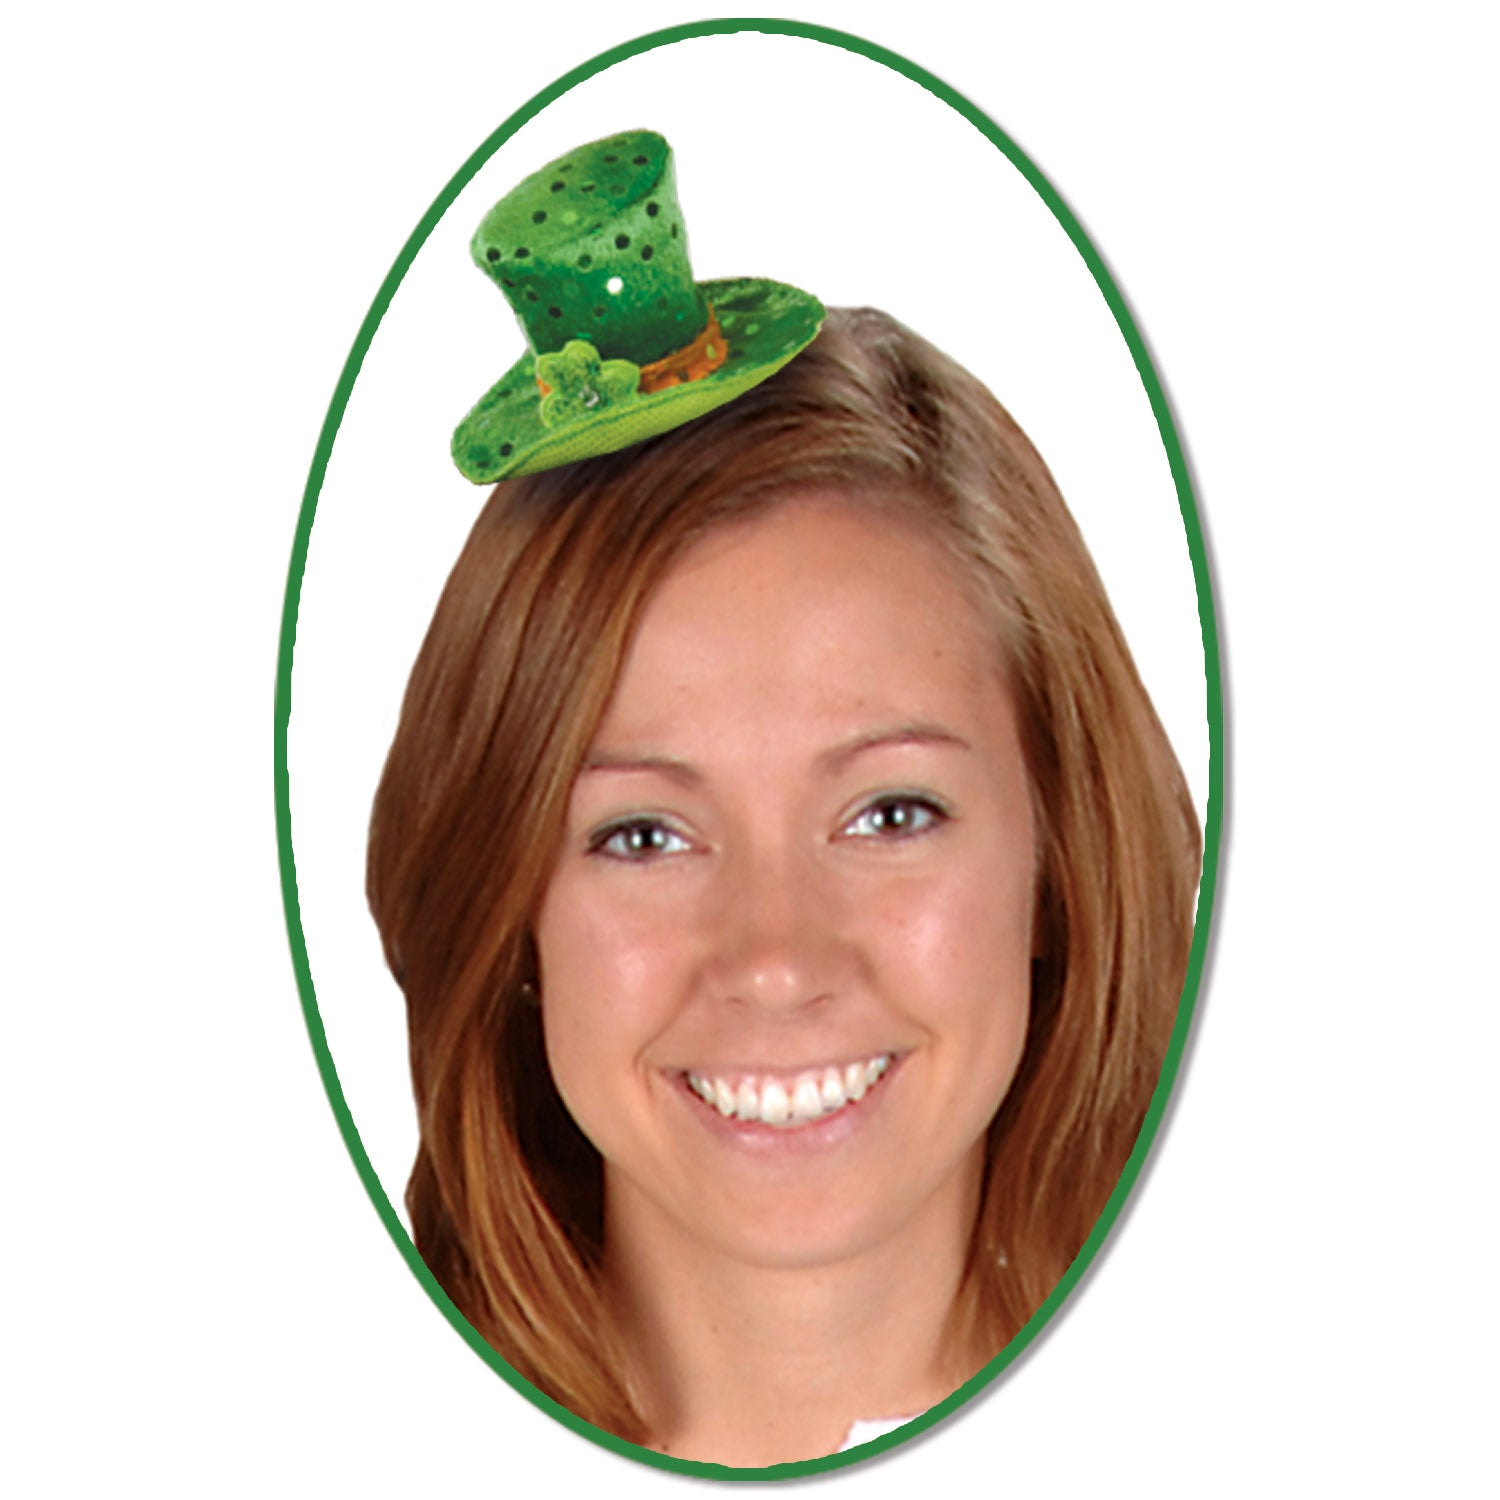 Leprechaun Hat Hair Clip by Beistle - St. Patricks Day Theme Decorations